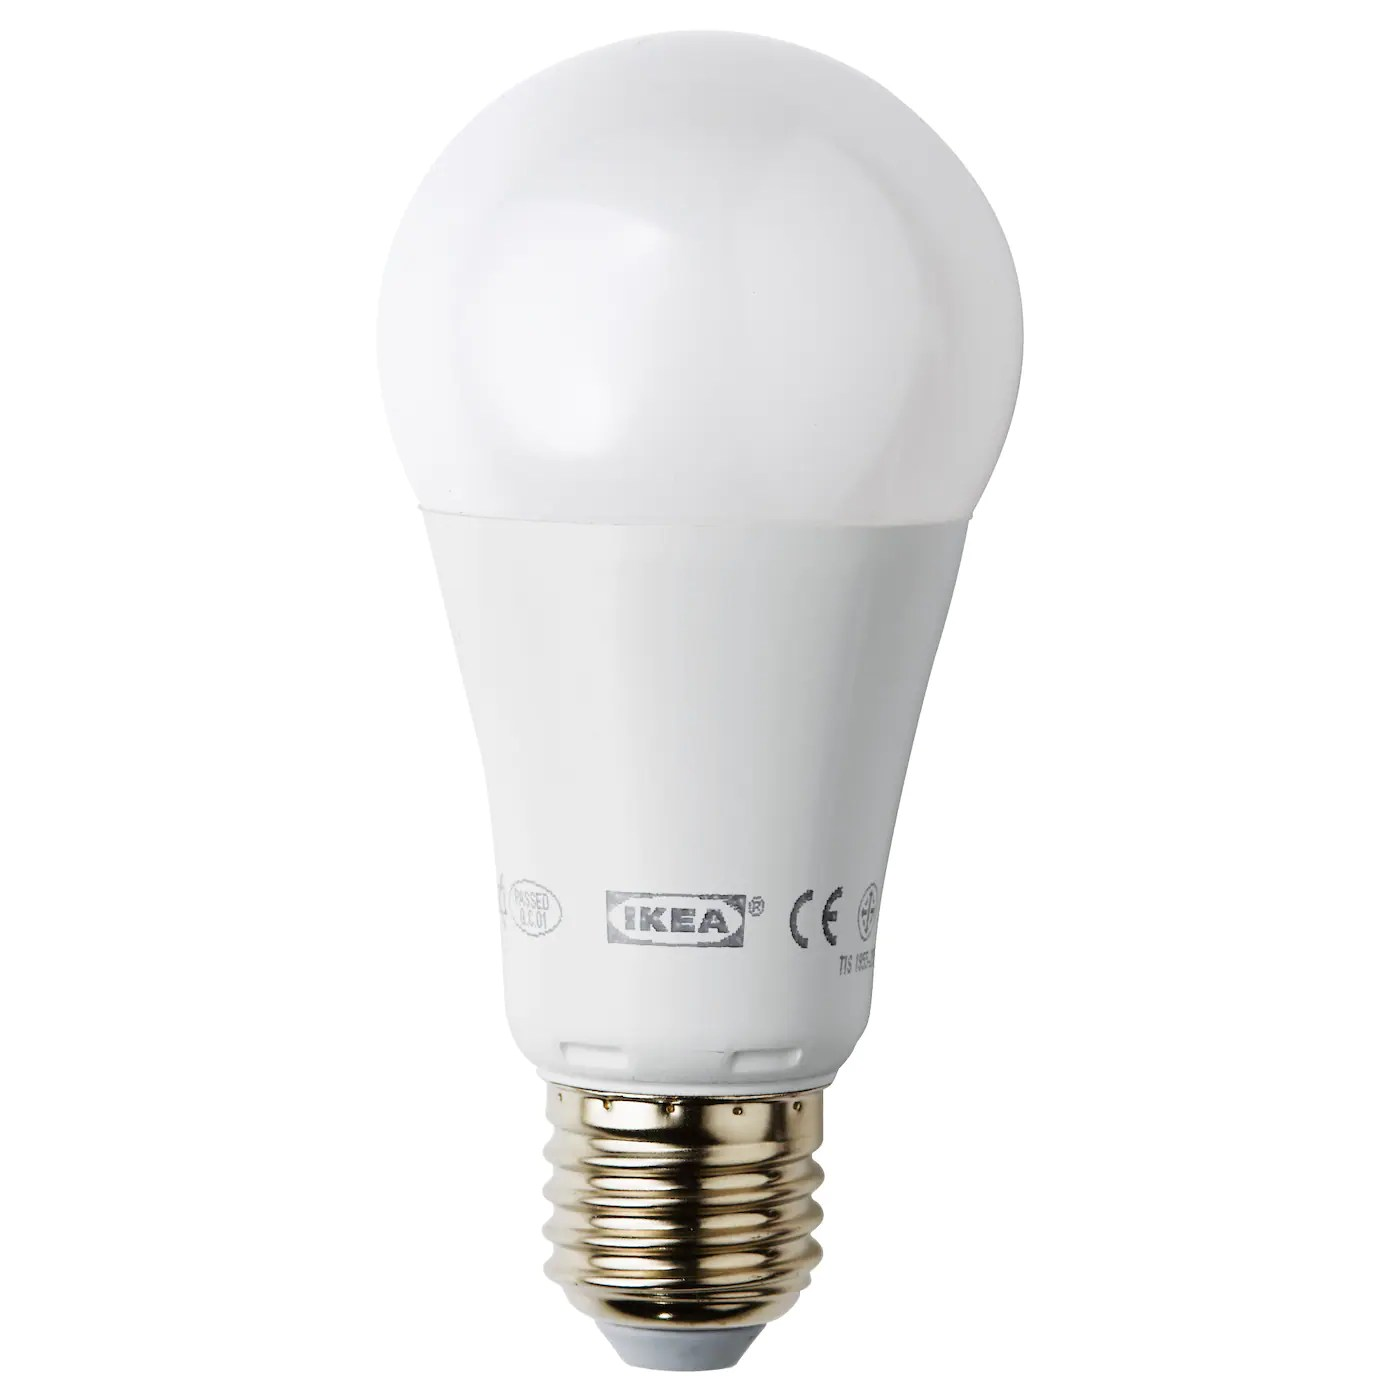 Led E27 Ledare Led Bulb E27 1000 Lumen Dimmable Globe Opal White